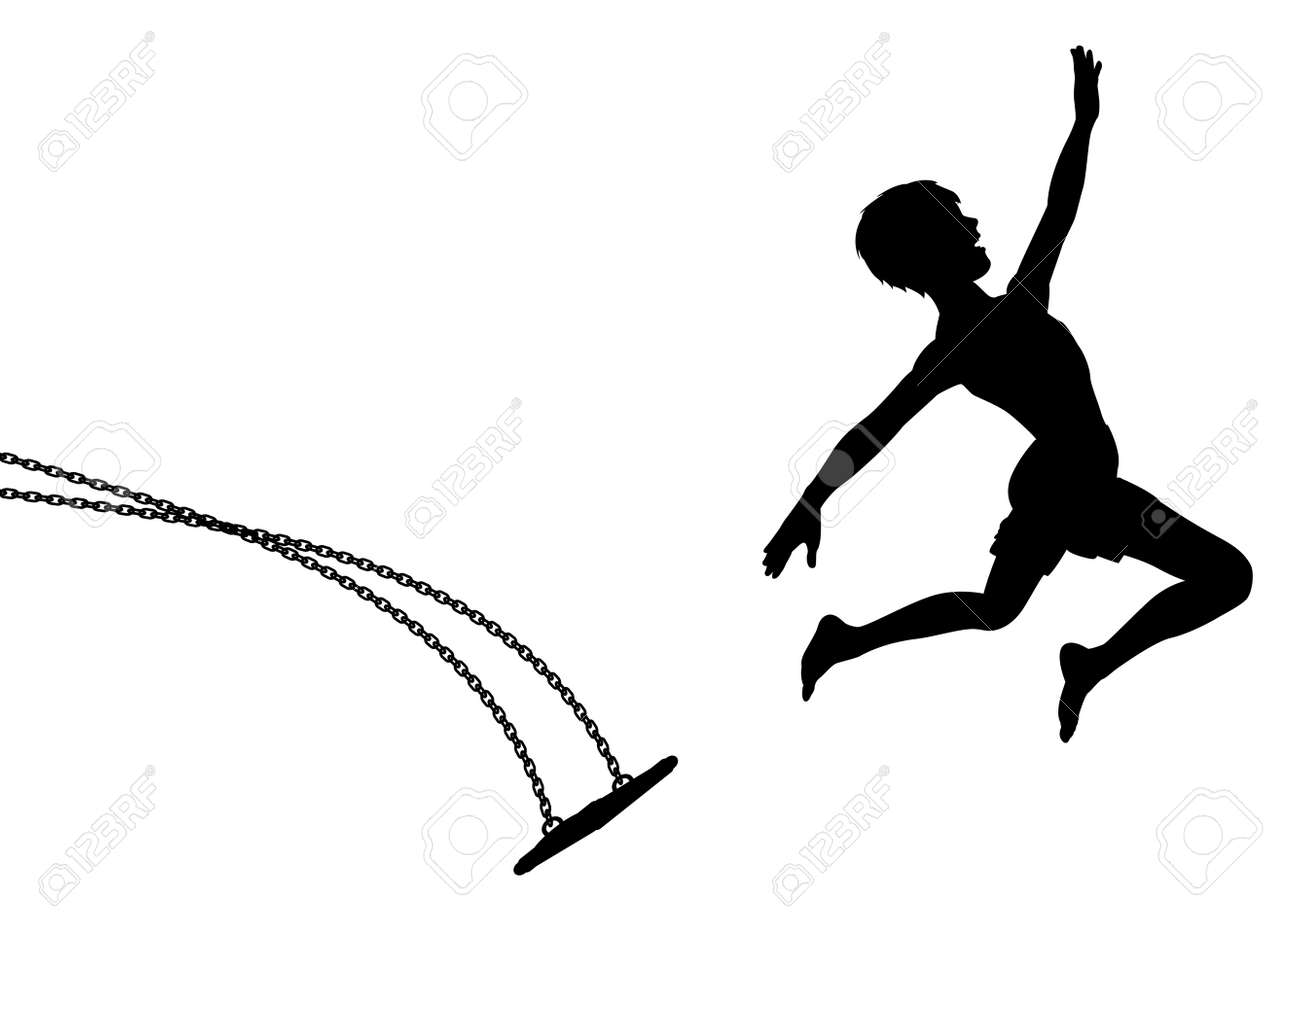 Editable vector silhouette of a young boy leaping off a swing Stock Vector - 6485254